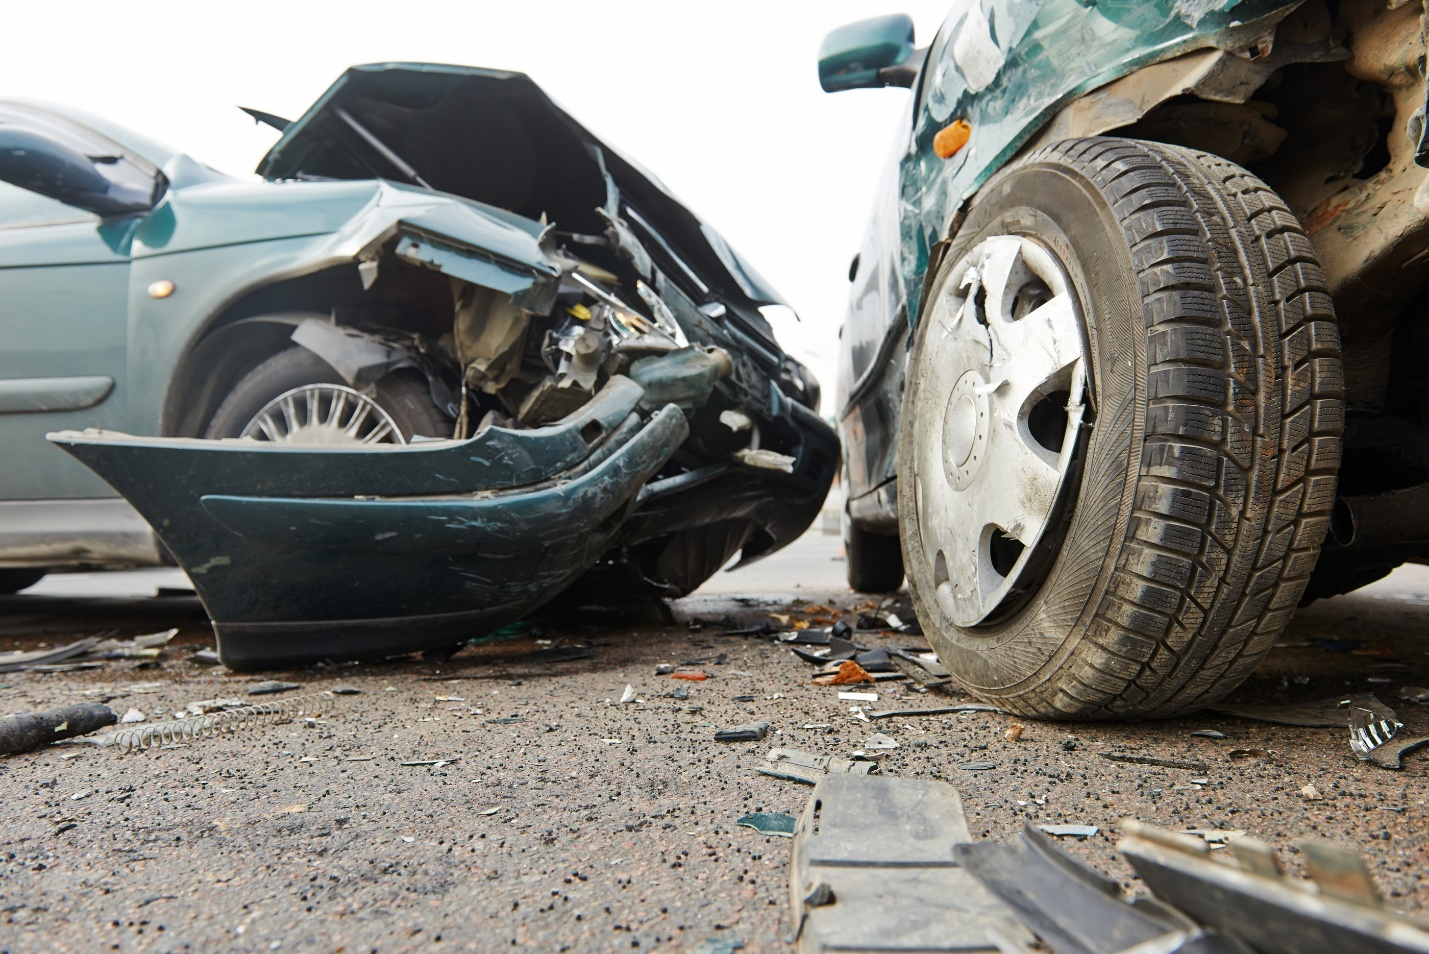 fayetteville car accident wrongful death lawyer - Abogado de Fayetteville Para Muerte por Accidente de Auto